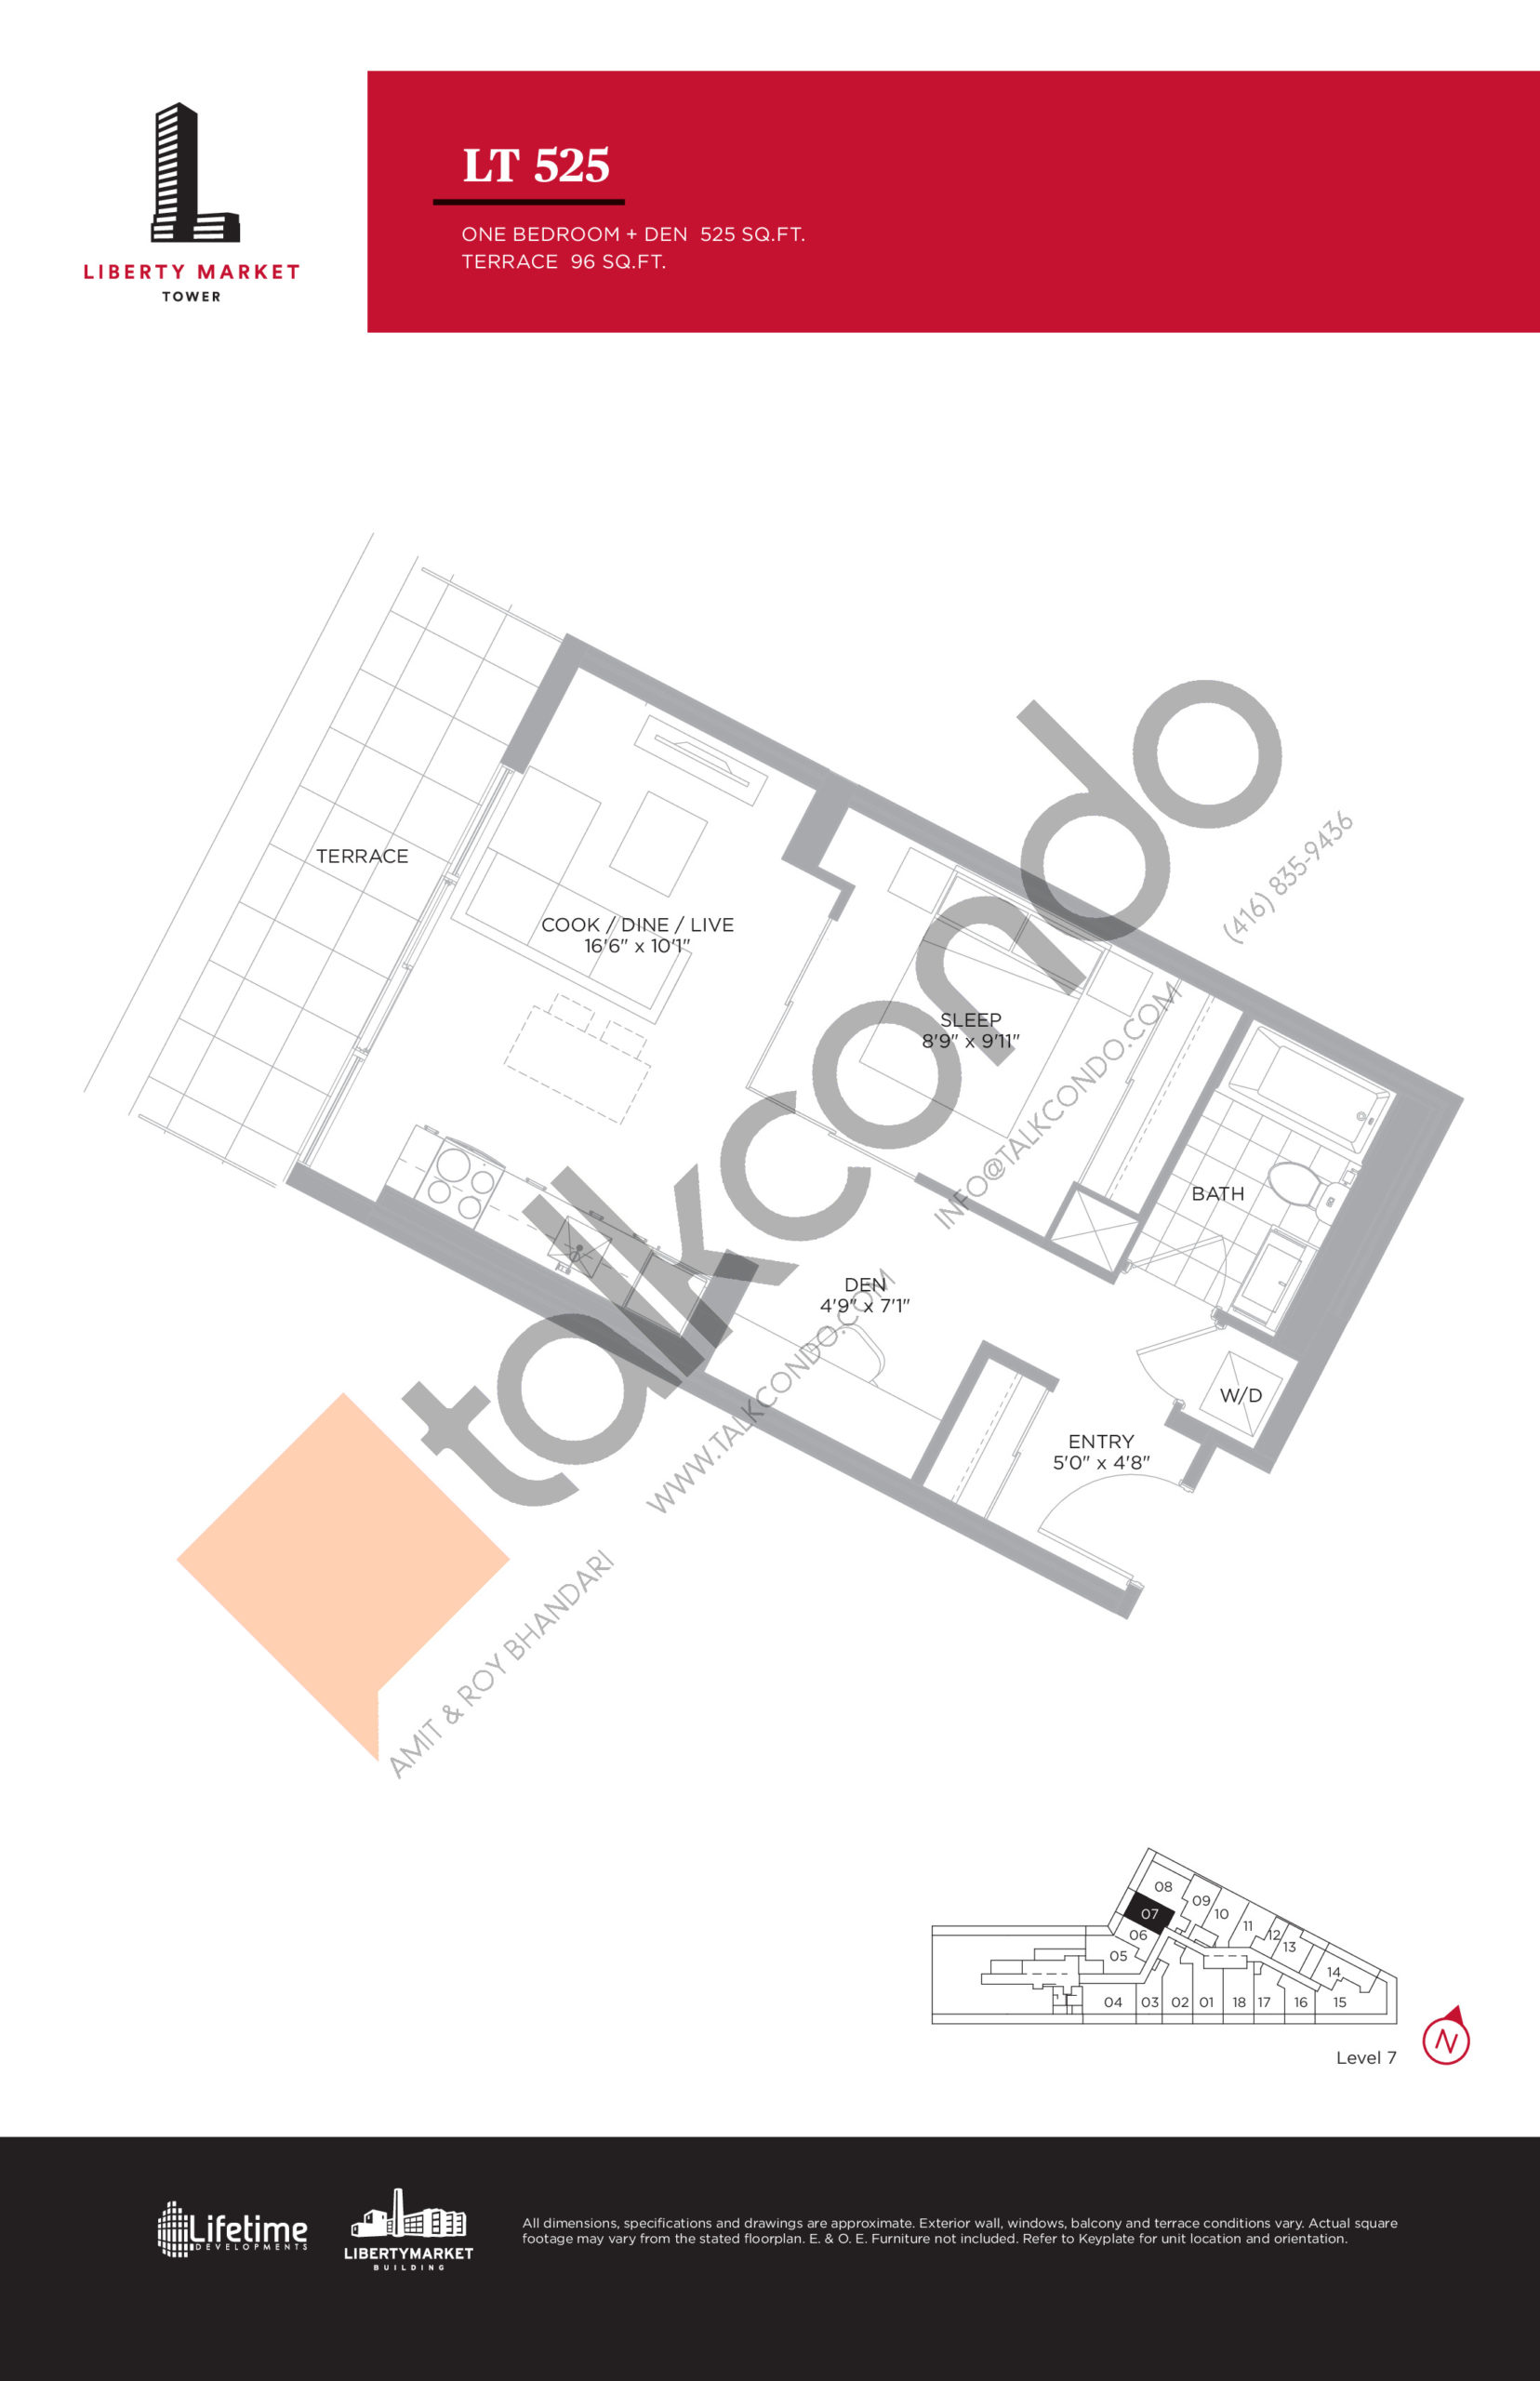 LT 525 - Terrace Collection Floor Plan at Liberty Market Tower Condos - 525 sq.ft